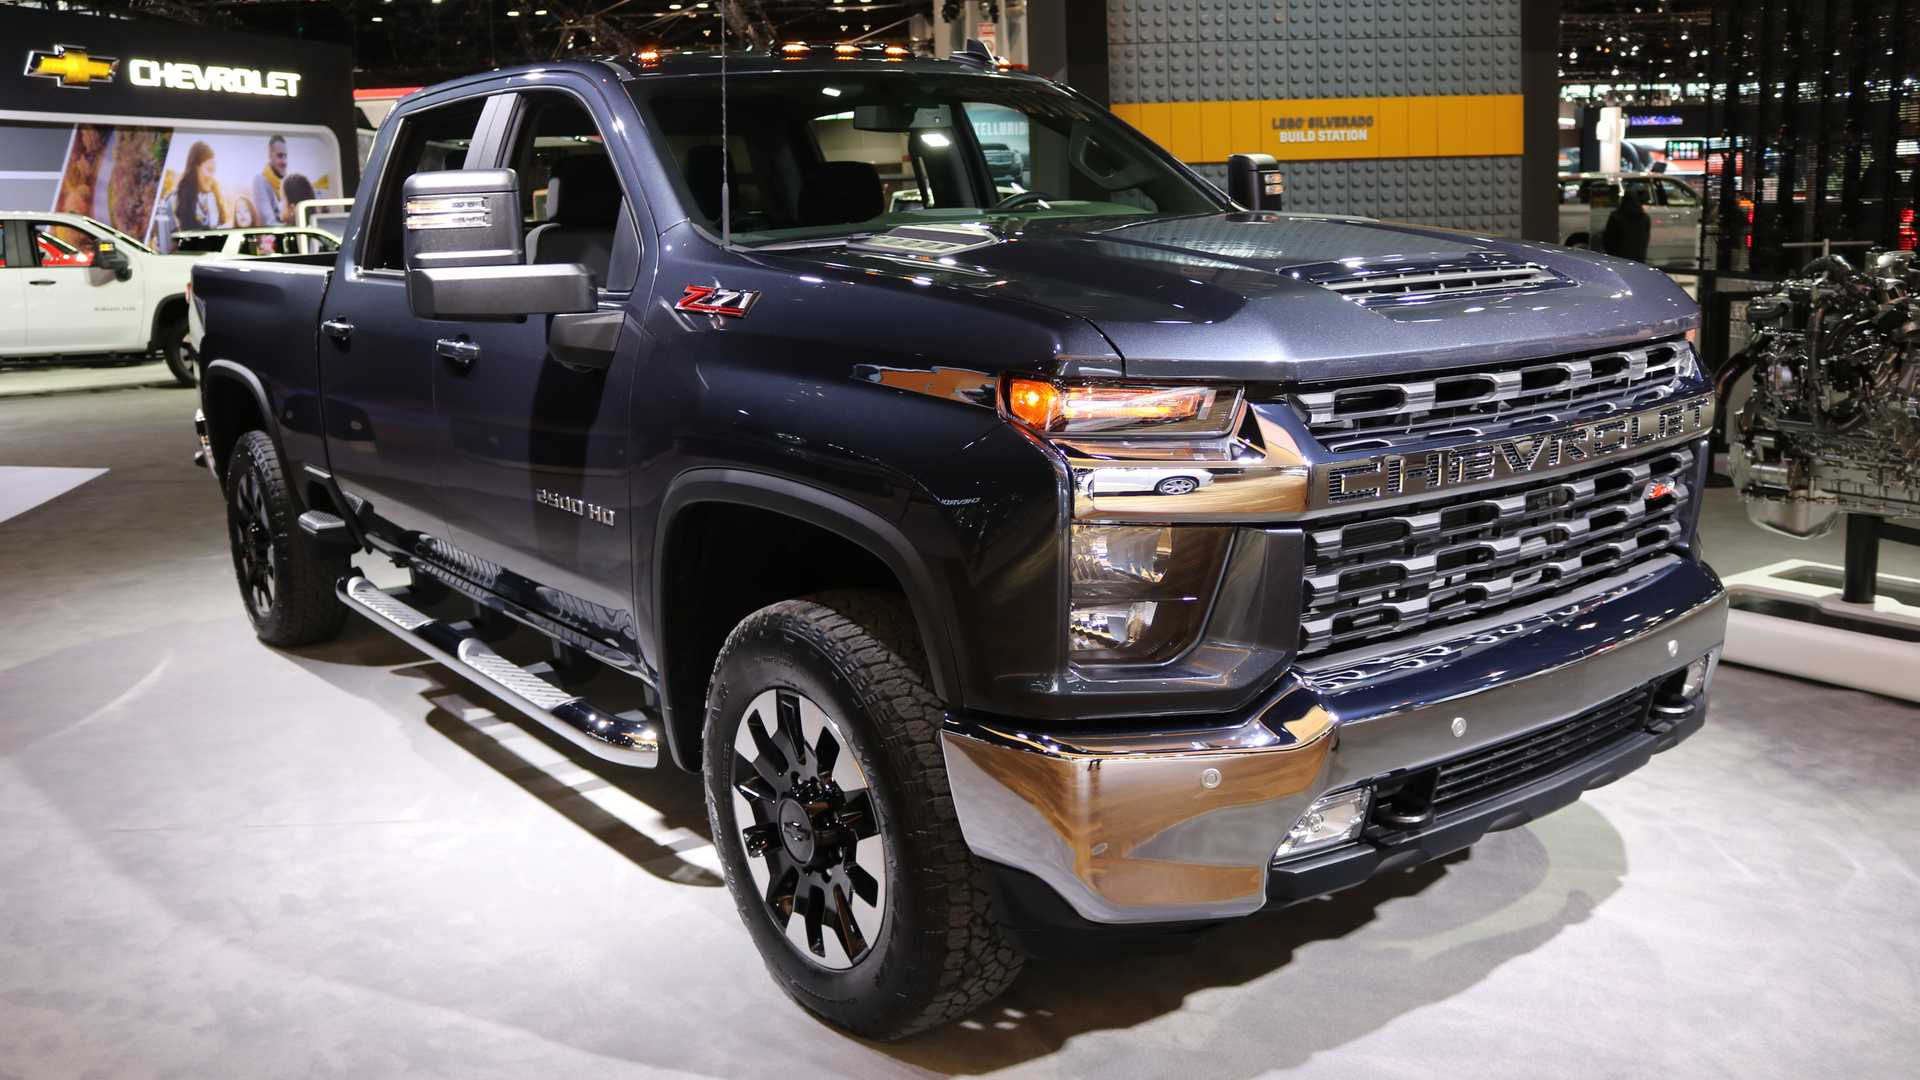 43 New 2020 Chevy Silverado 1500 Specs And Review